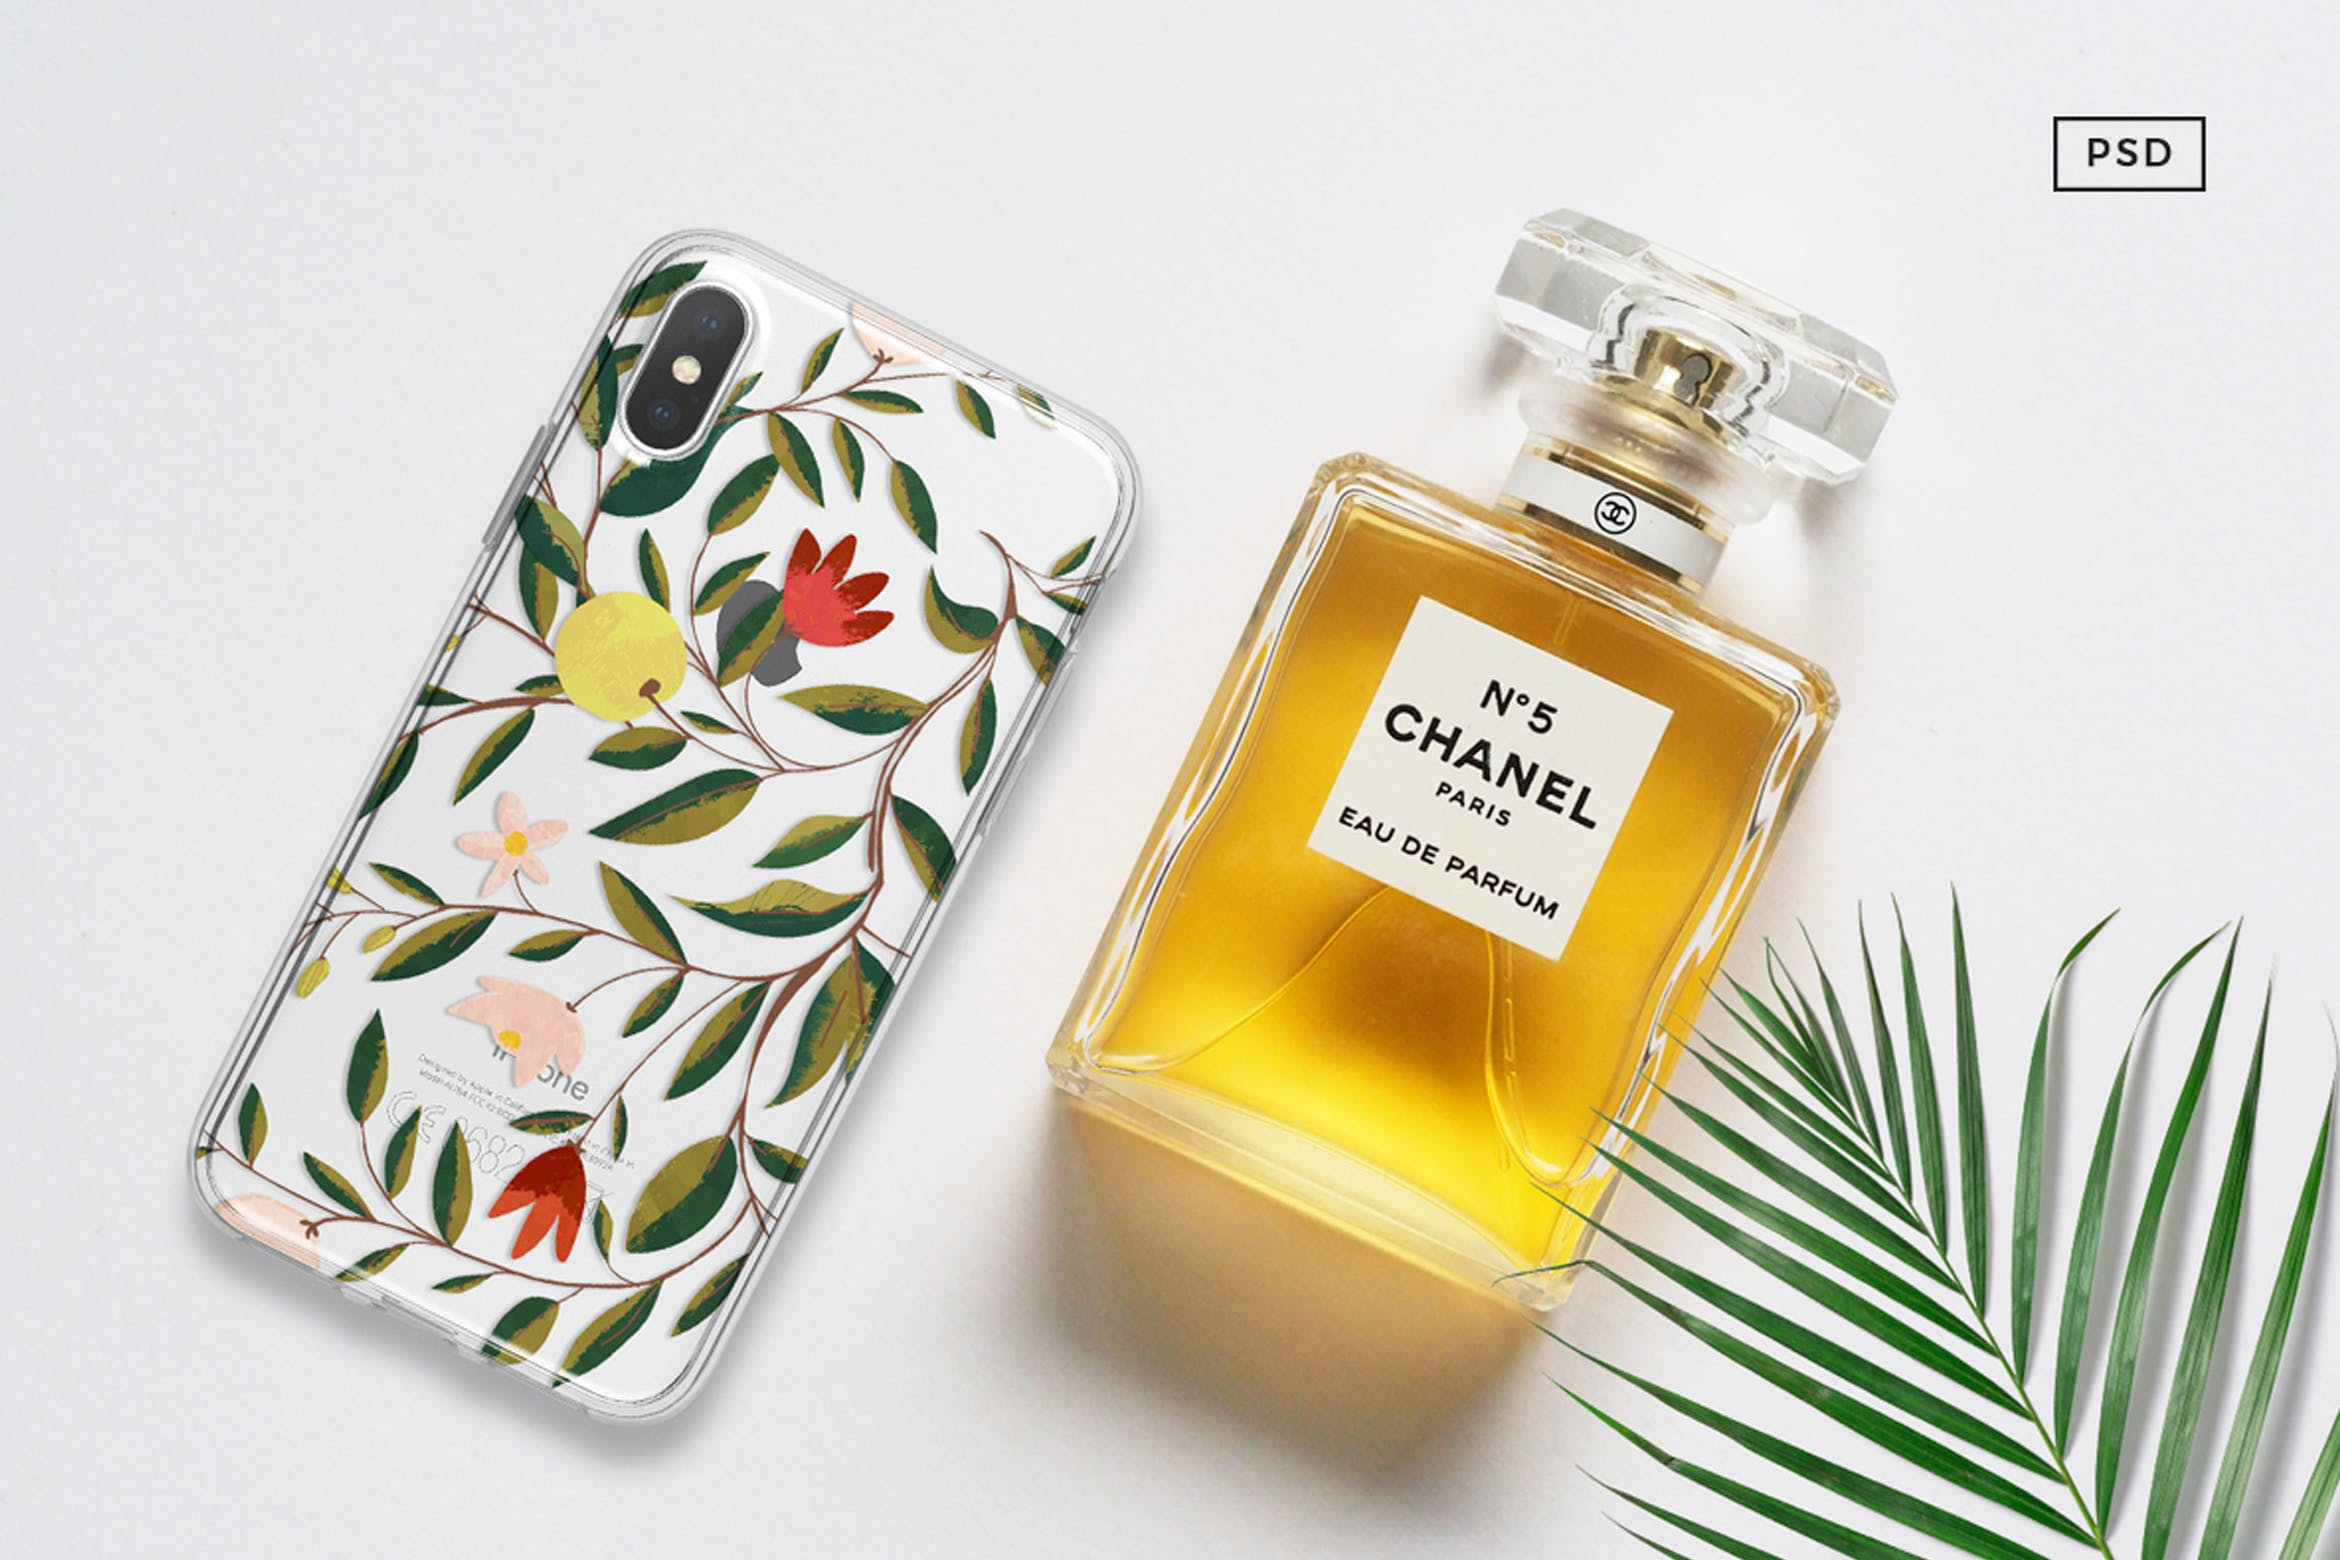 iPhone X样机香奈儿香水瓶子iPhone X Mock Up With Chanel Bottle